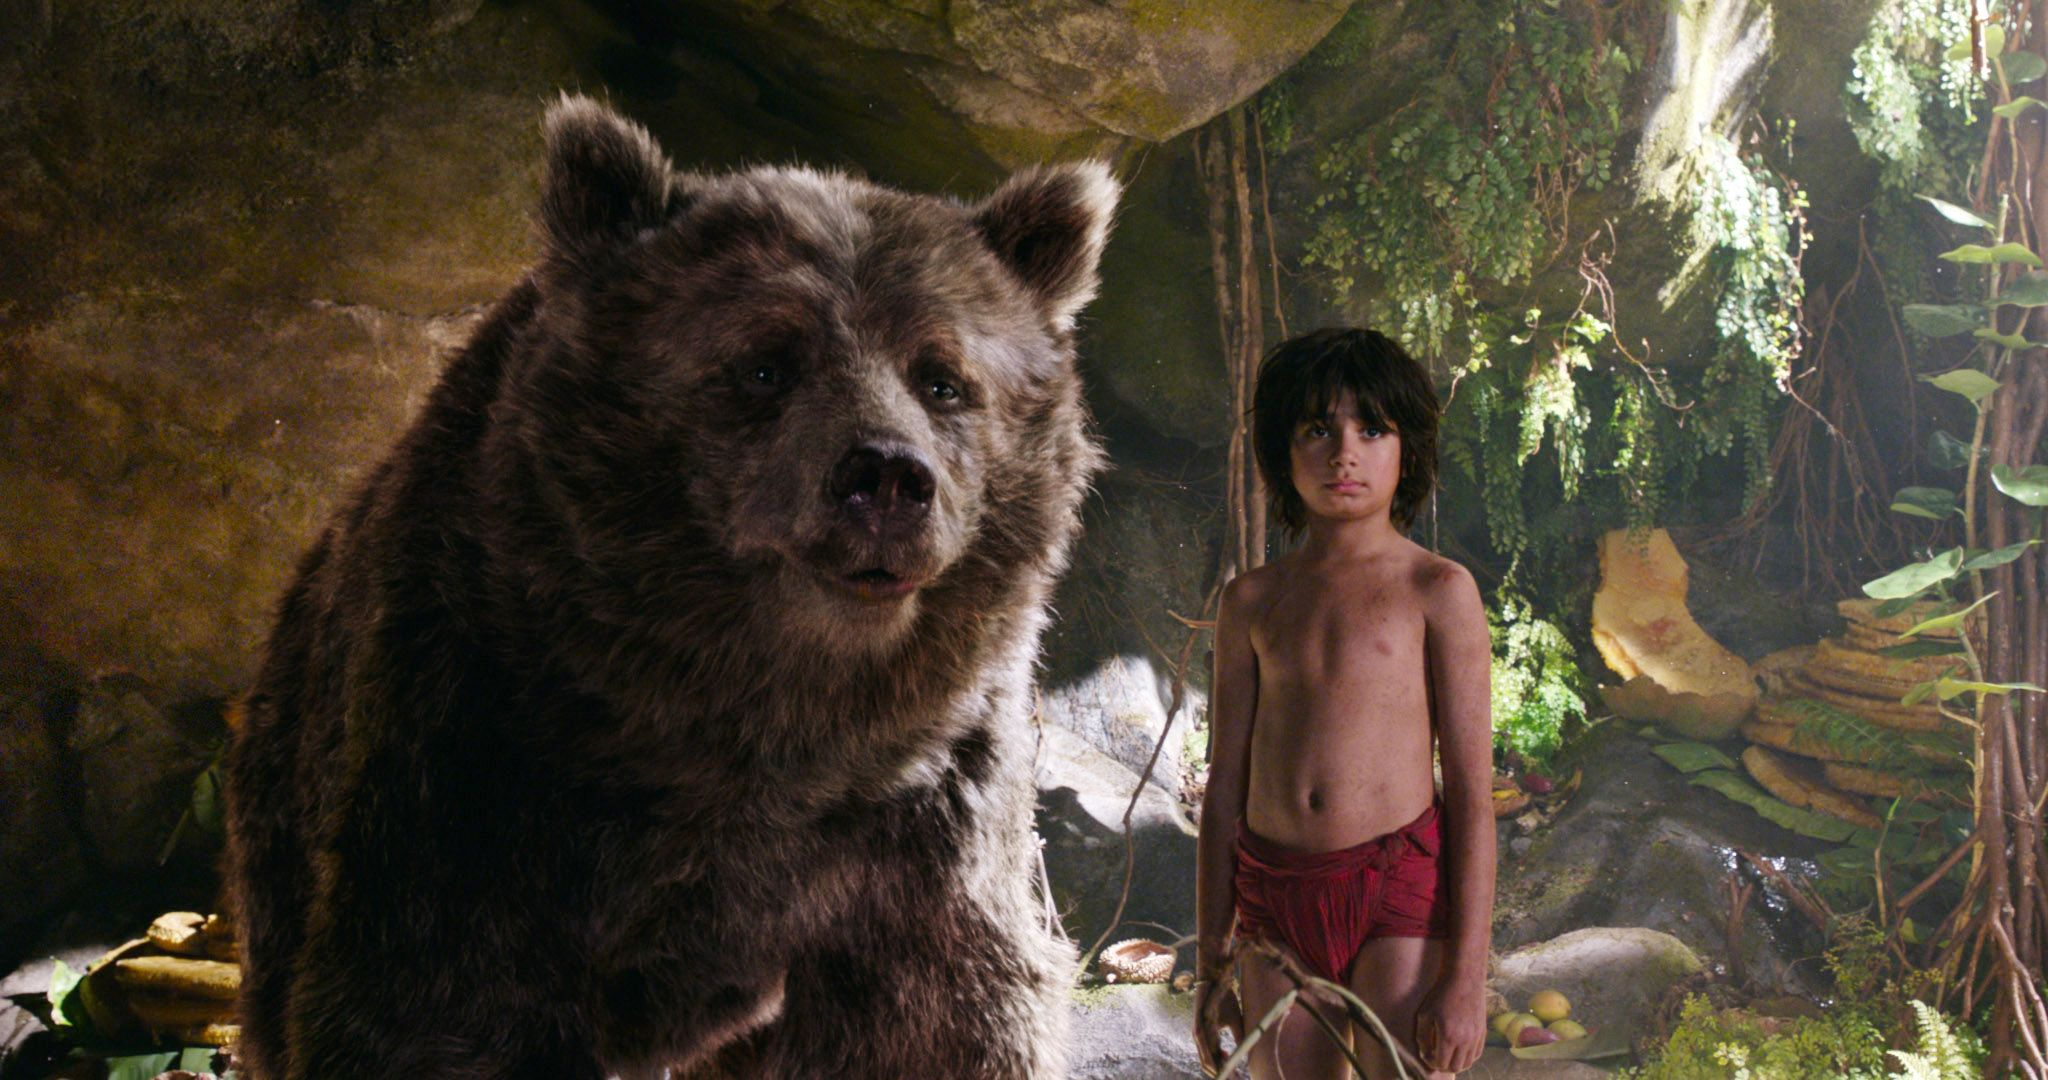 """Baloo (voice: Bill Murray) and Neel Sethi in """"The Jungle Book (2016)."""""""